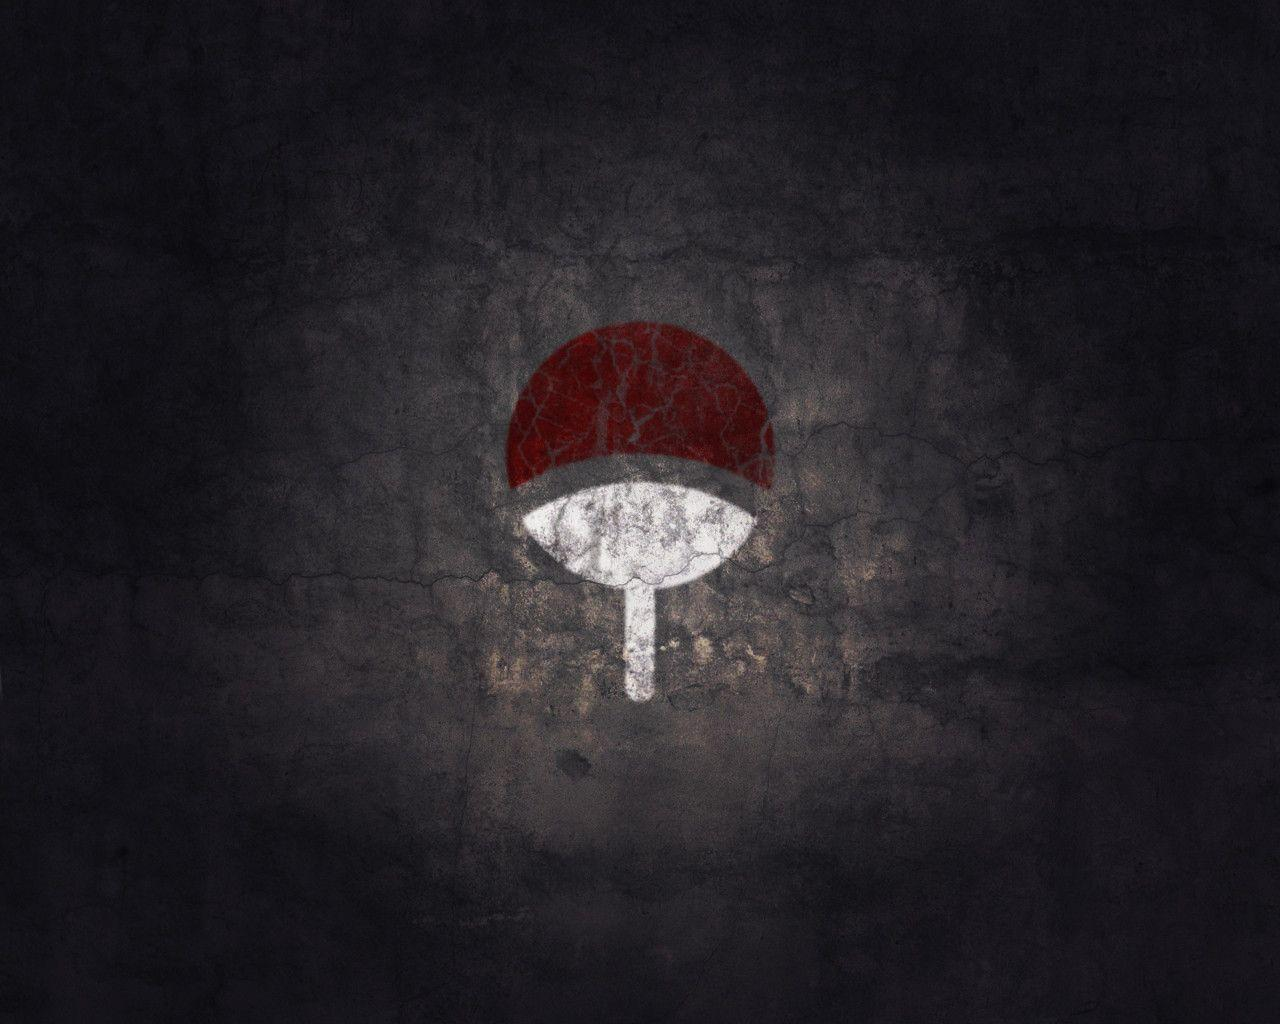 Download Wallpaper Logo Naruto - wp2316050  Snapshot_879468.jpg